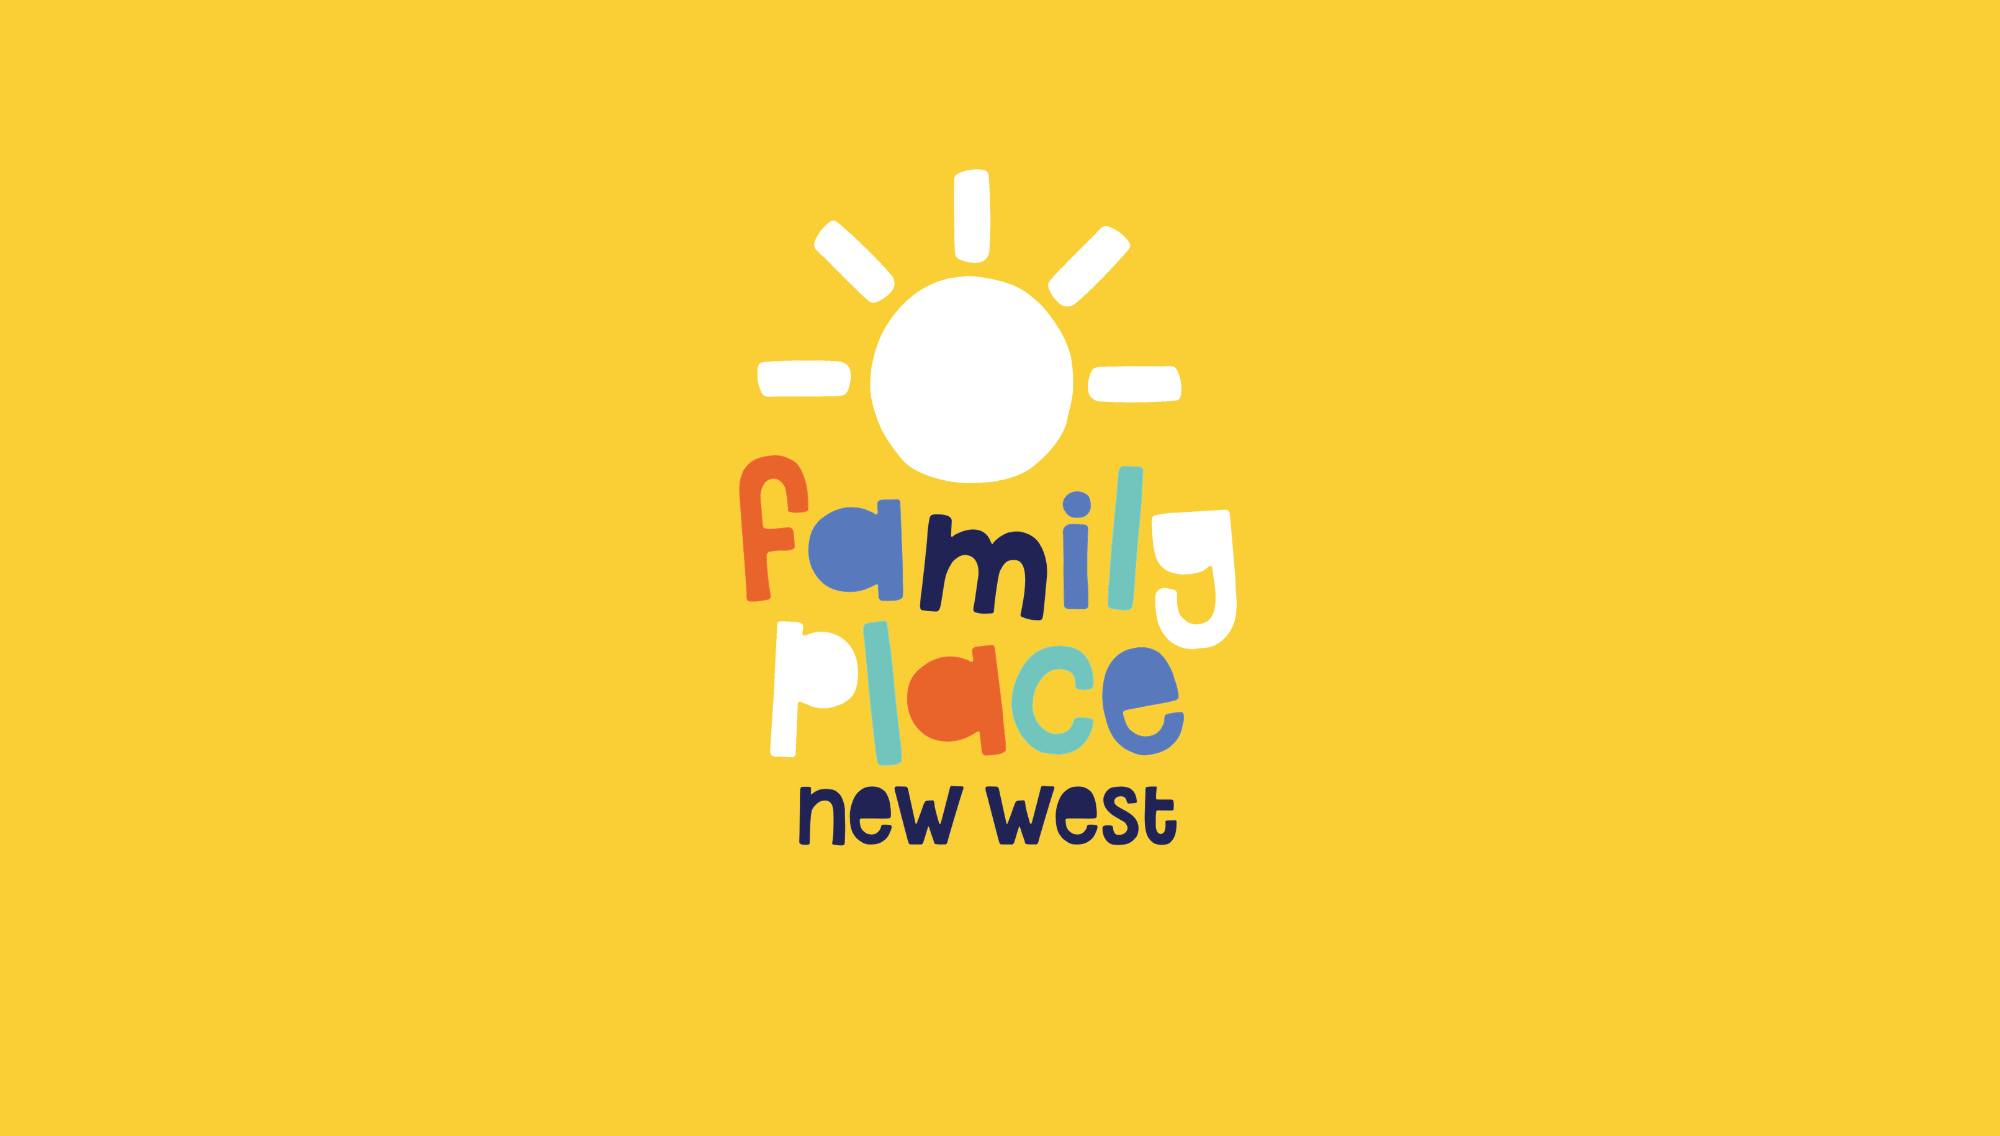 New West Family Place